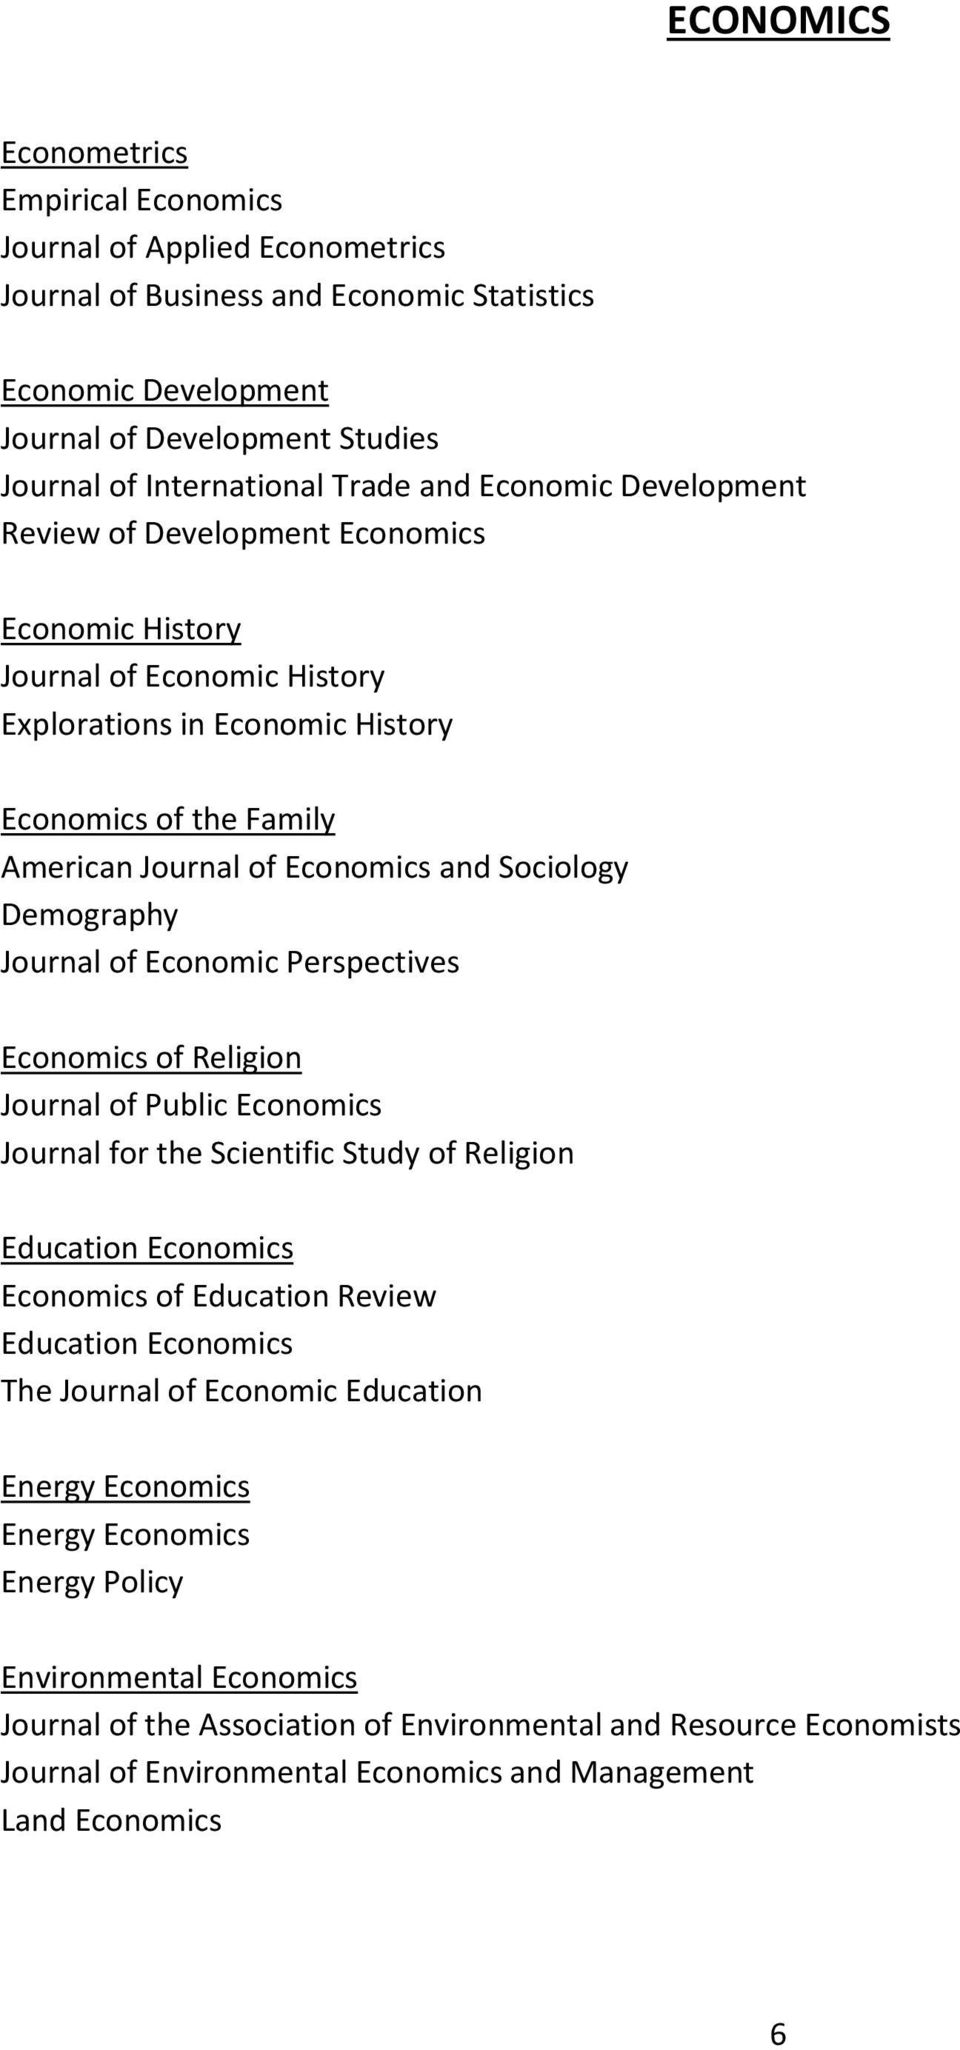 Sociology Demography Journal of Economic Perspectives Economics of Religion Journal of Public Economics Journal for the Scientific Study of Religion Education Economics Economics of Education Review